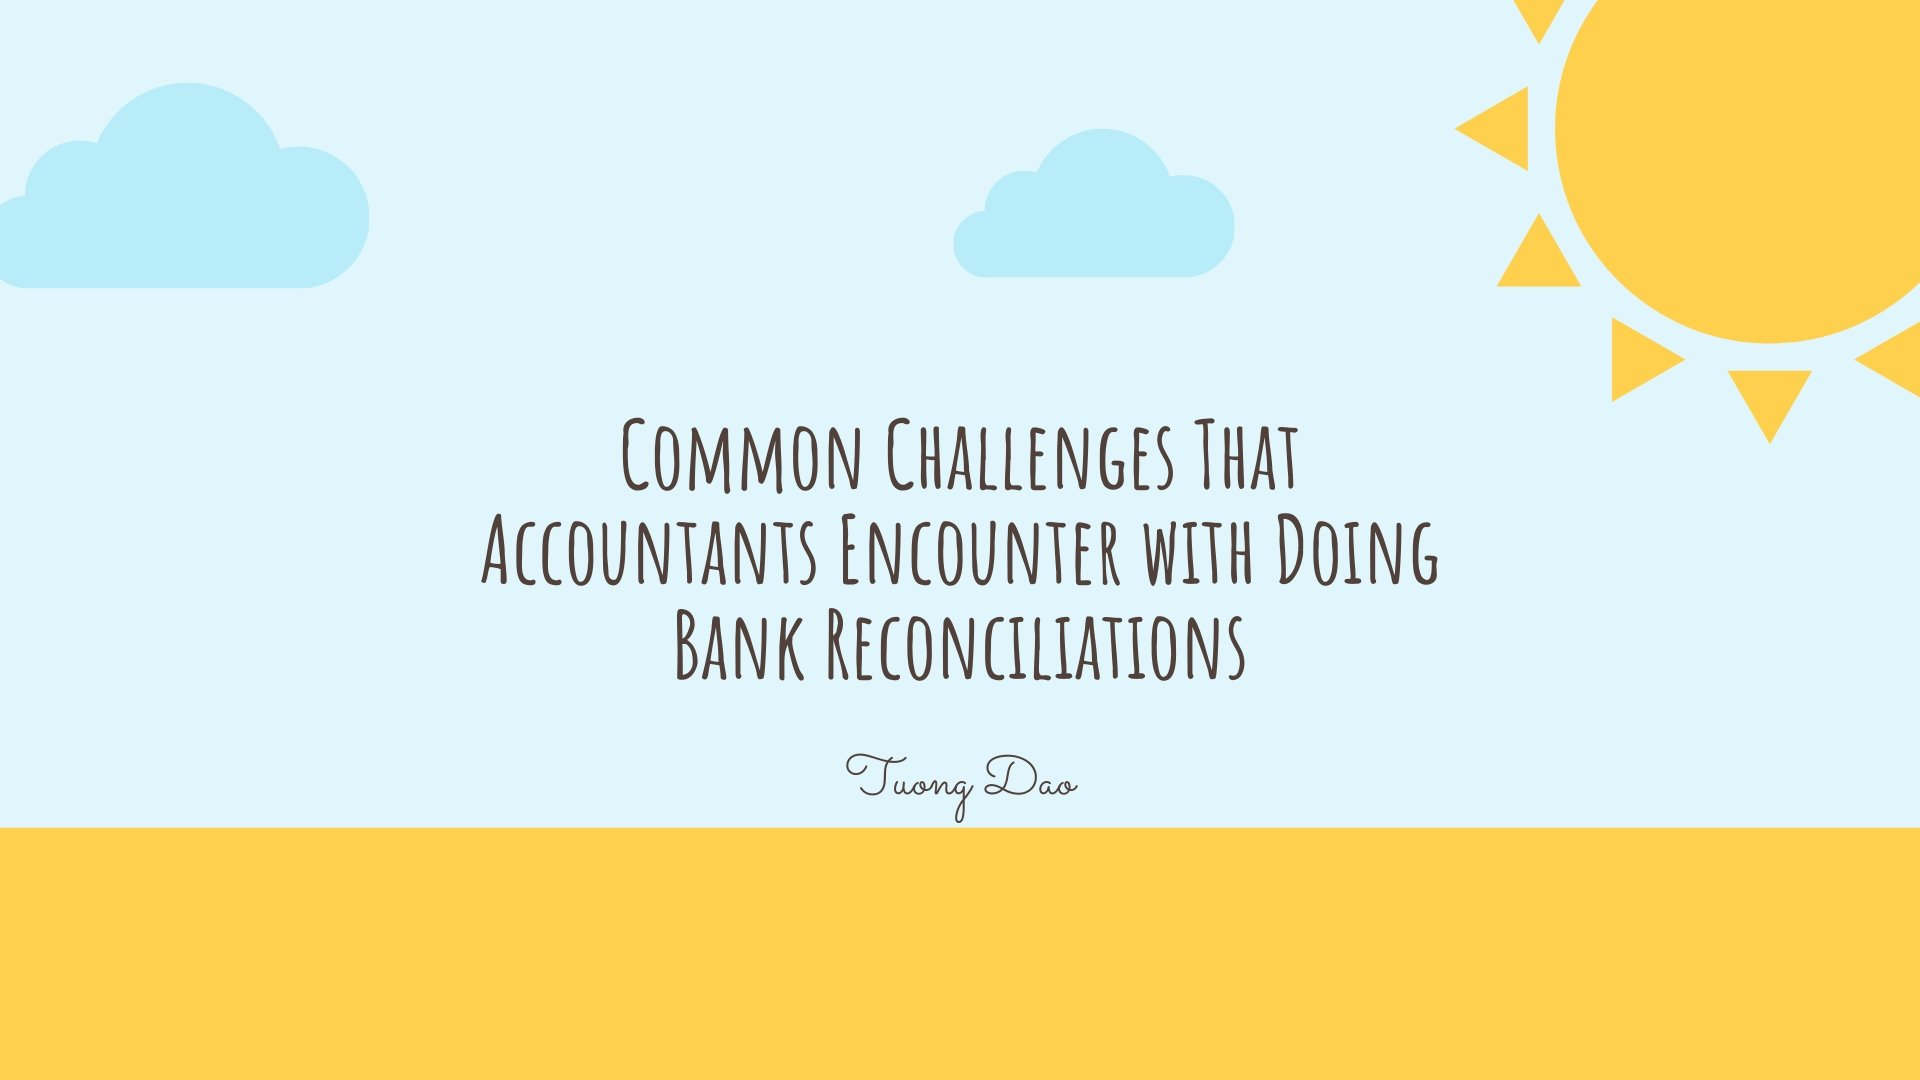 Bank Reconciliation and Challenges That Accountants Face